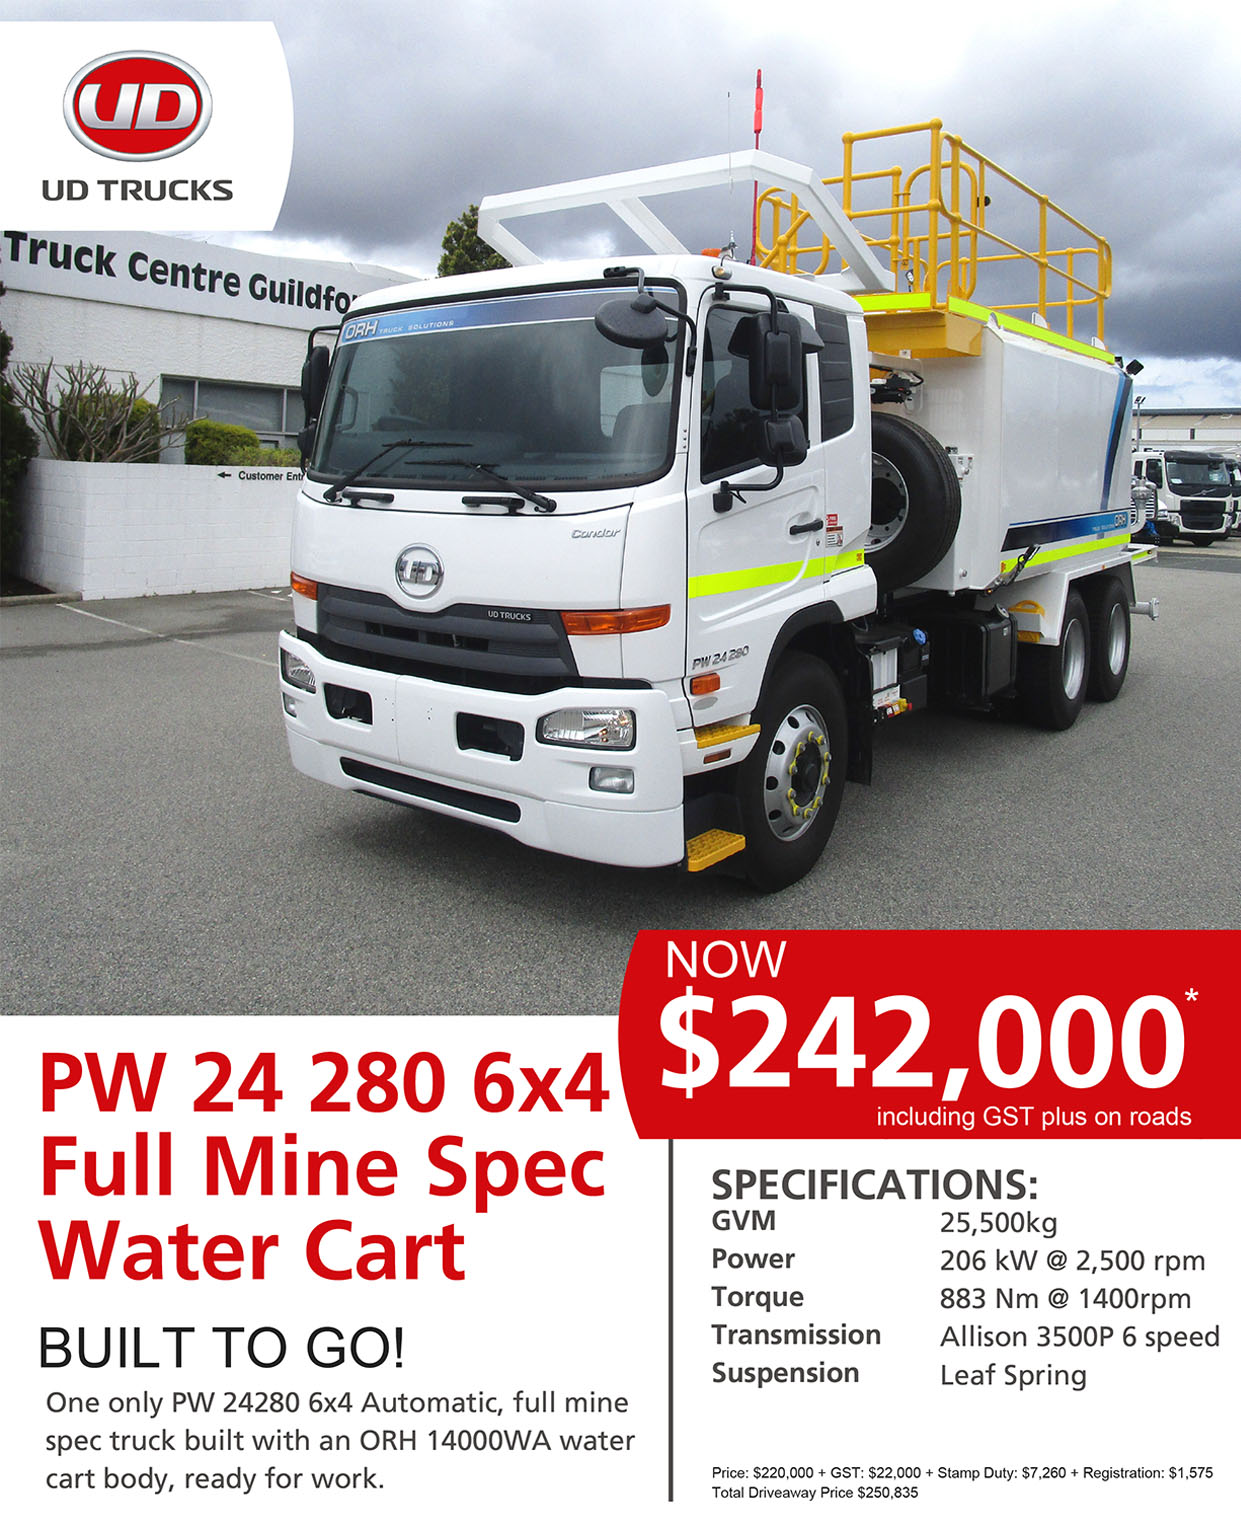 UD PW24280 Full Mine Spec Water Cart